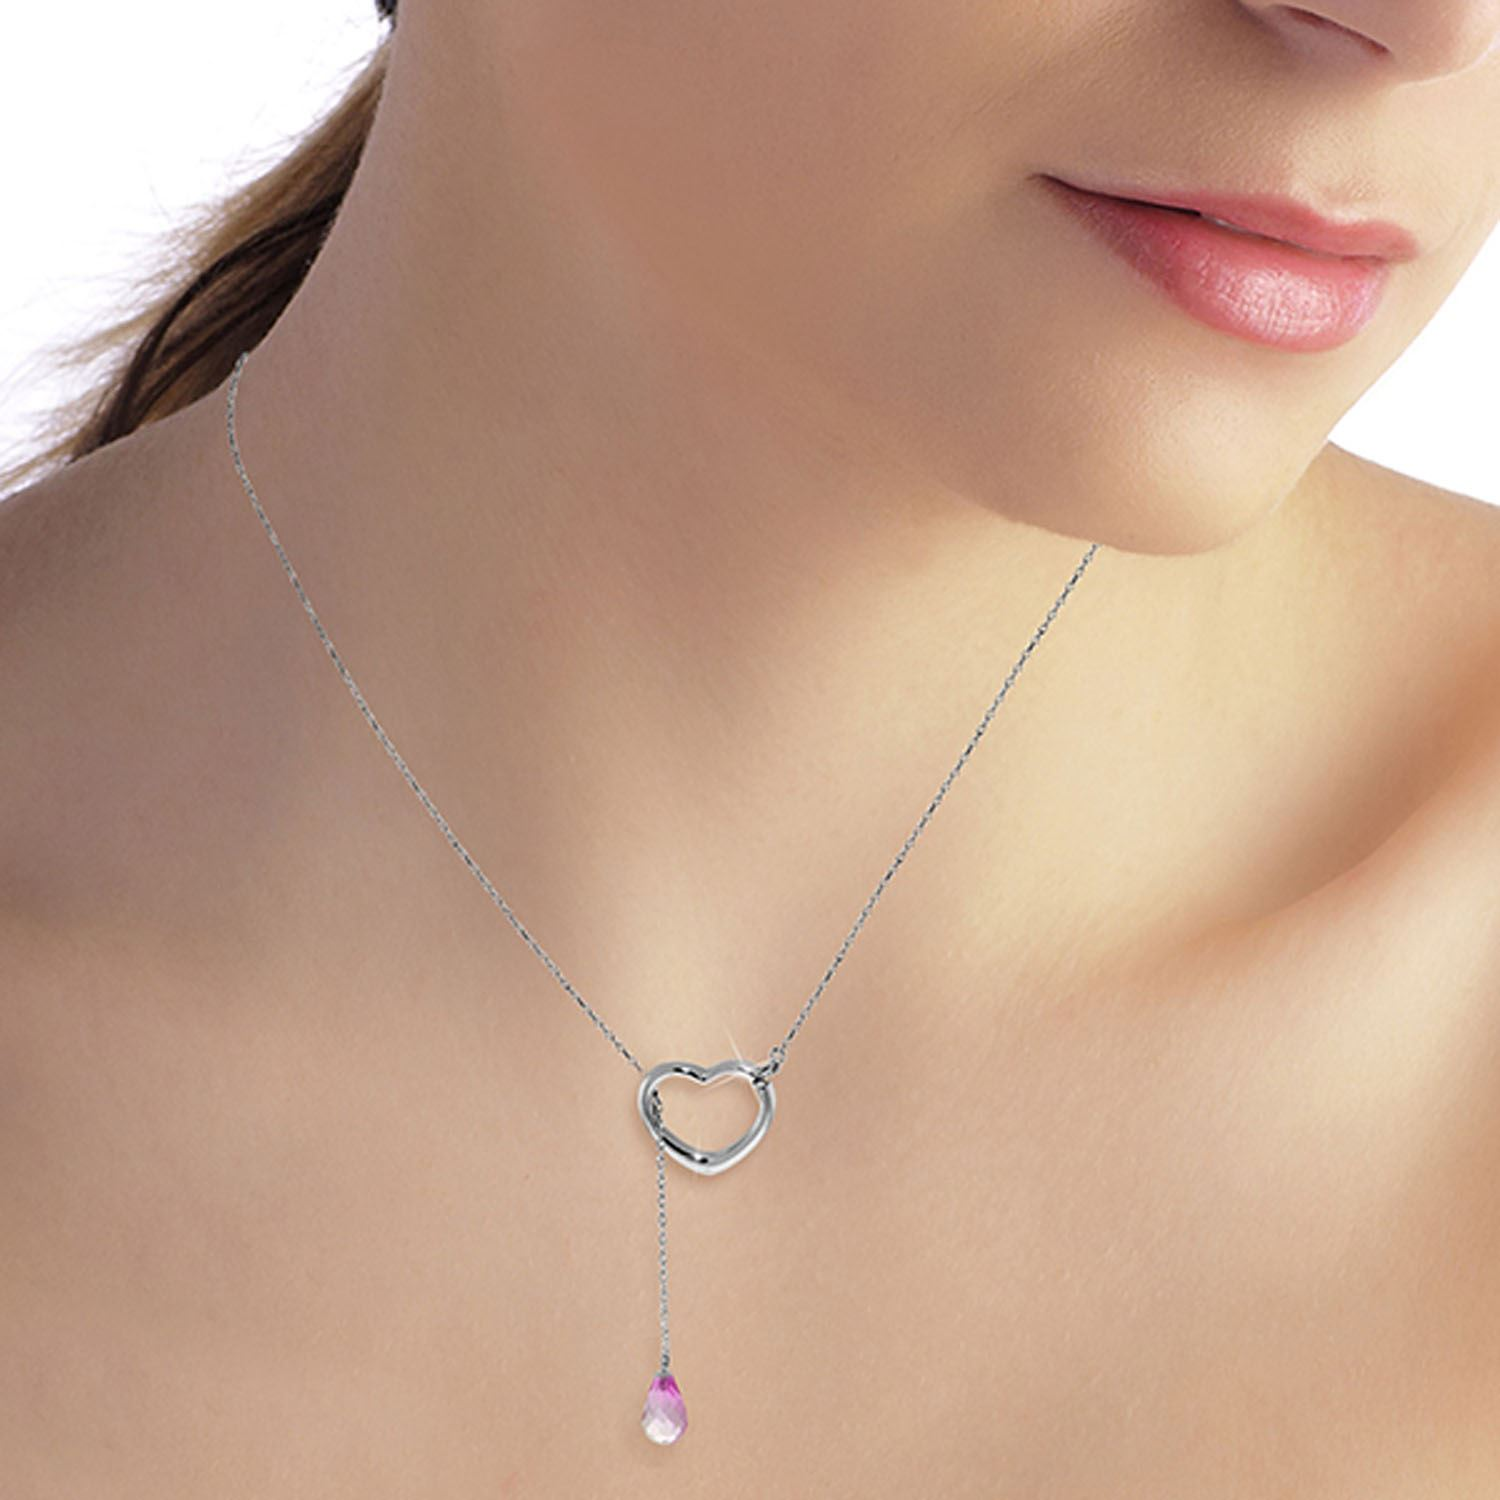 ALARRI 14K Solid White Gold Heart Necklace w// Natural Pink Topaz with 20 Inch Chain Length